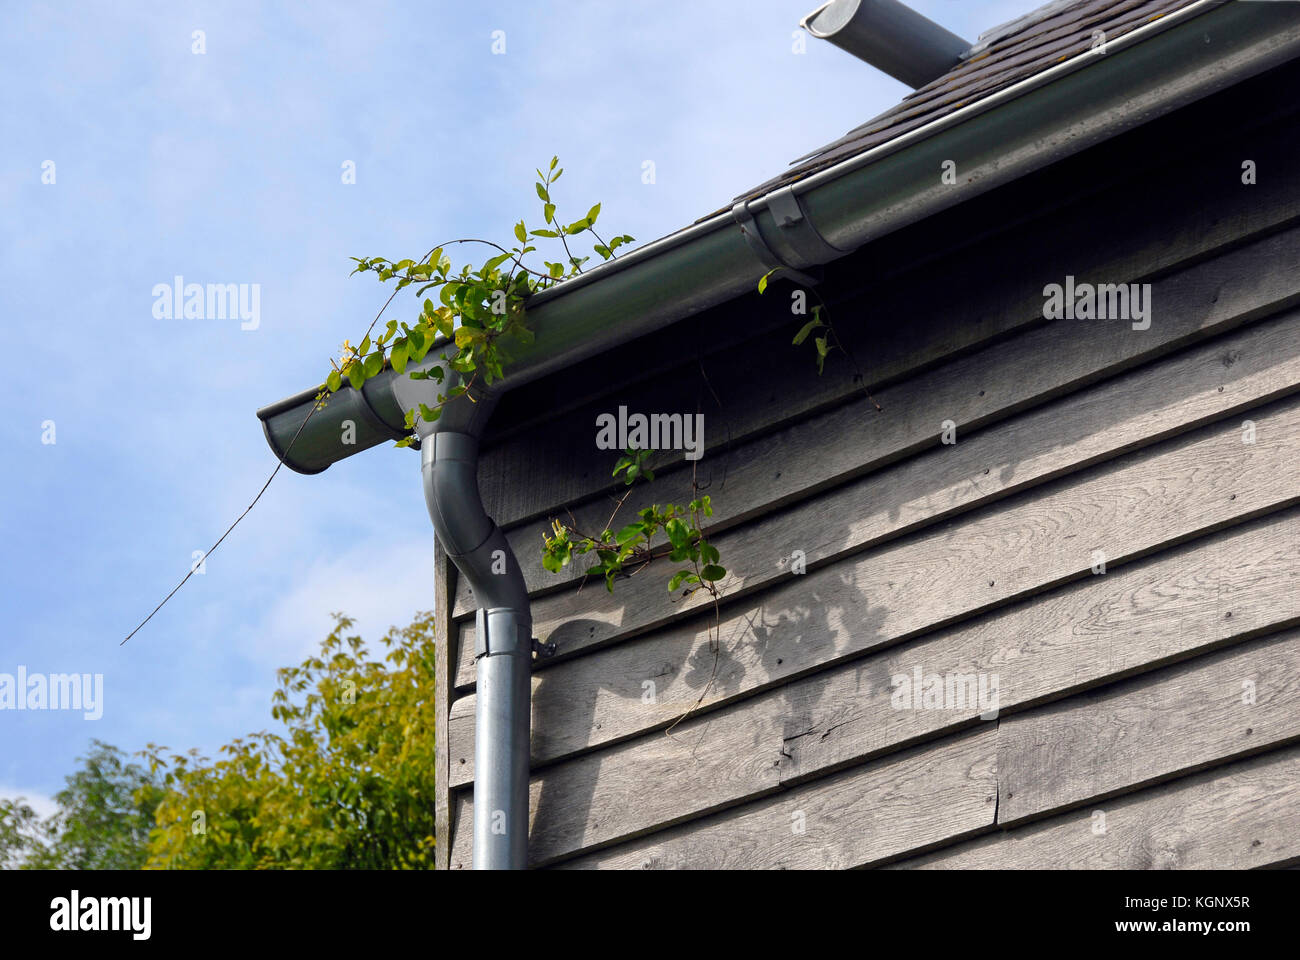 Plant growing in plastic gutter of wooden building - Stock Image